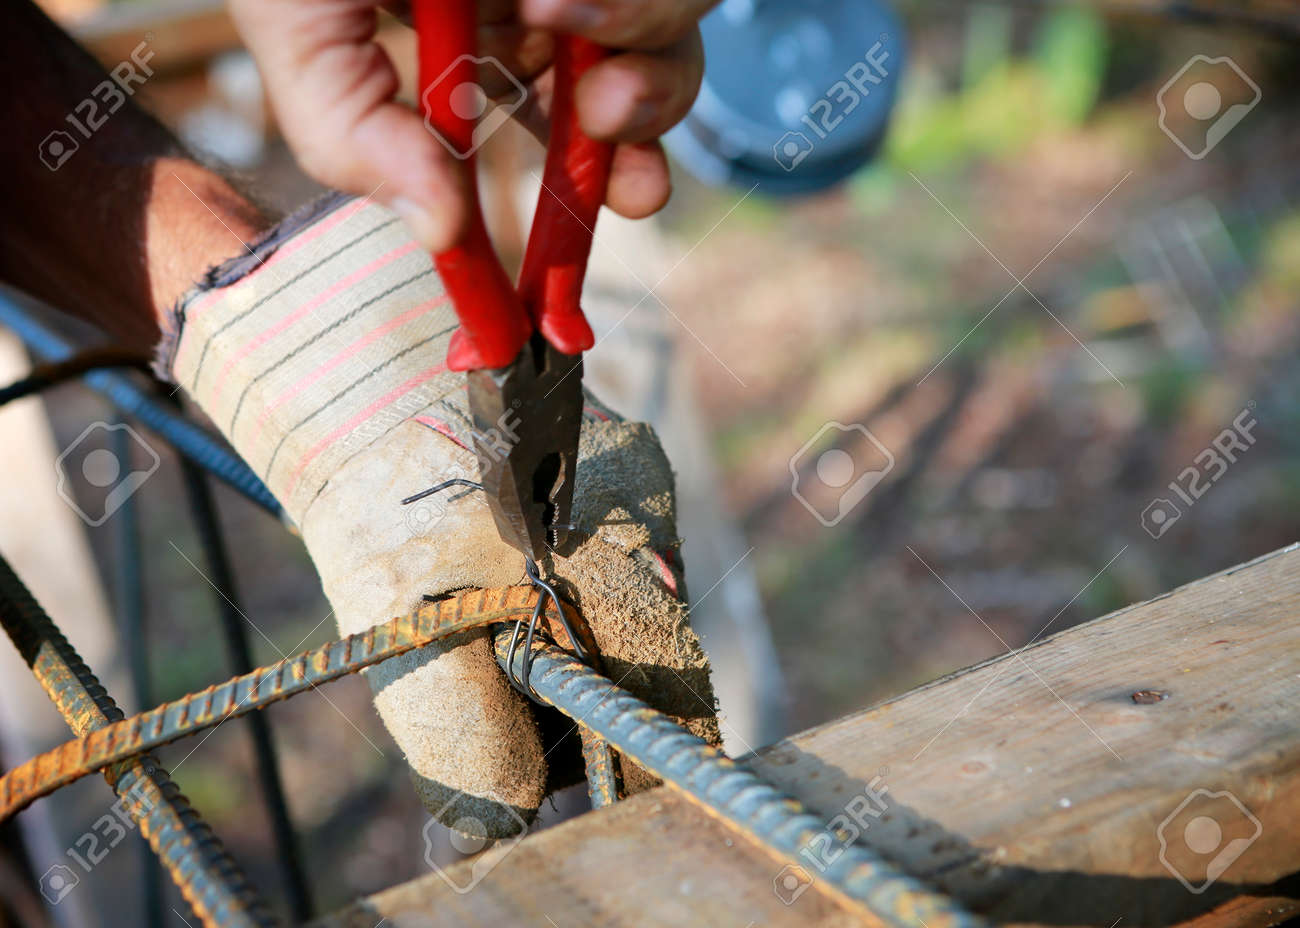 Attaching the rebars to each other. Worker's hands fasten the reinforcement with wire. Close up, selective focus. - 156159684